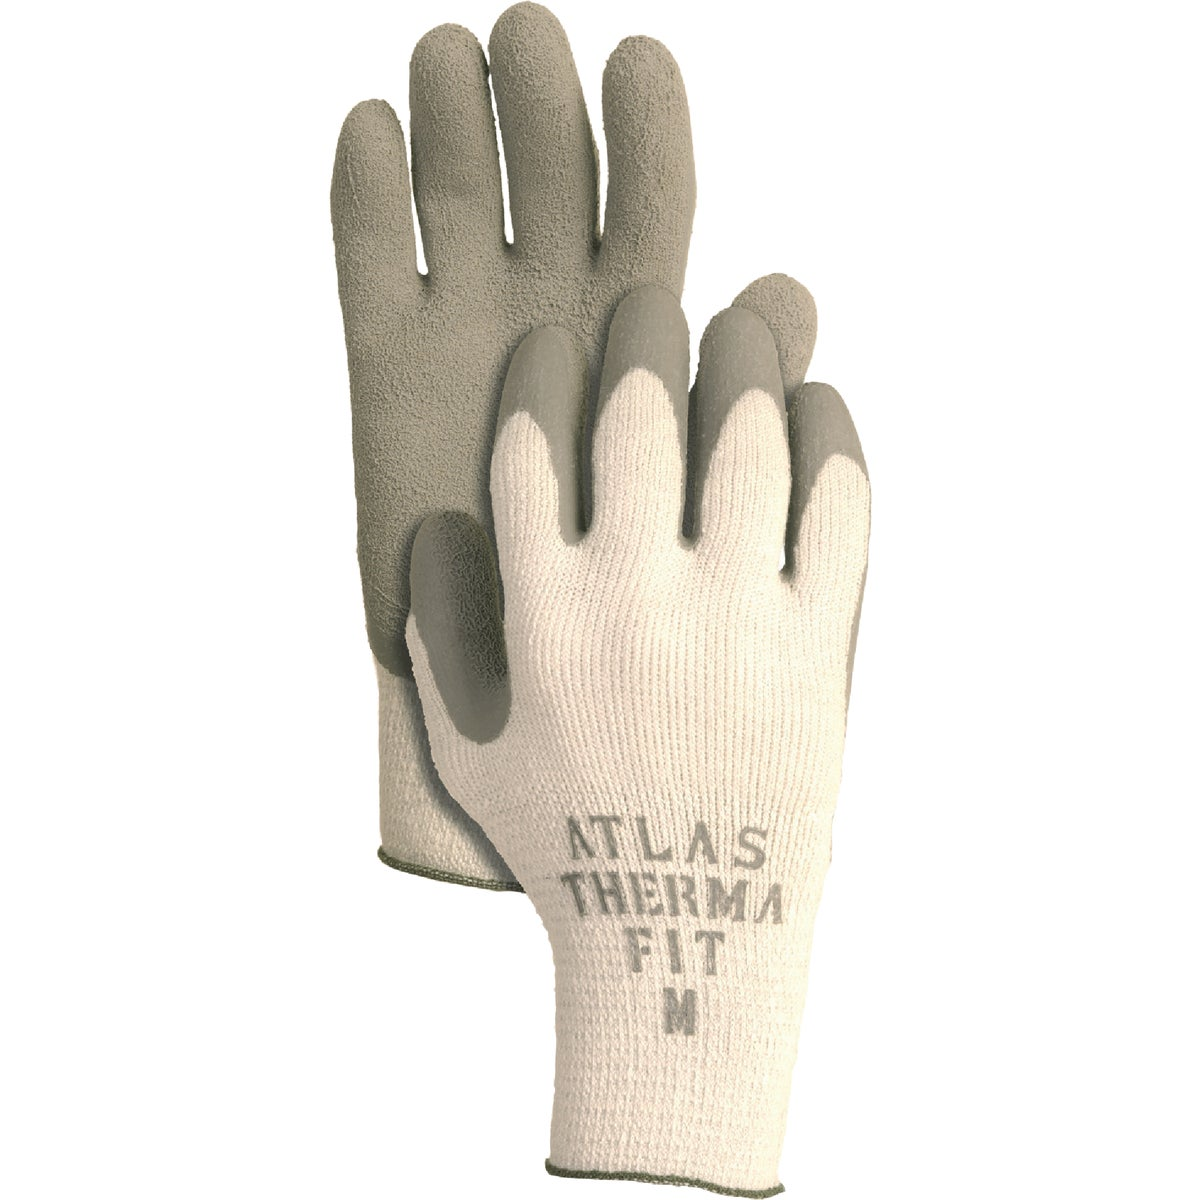 MED THRMA PALM DIP GLOVE - 451M-08.RT by Showa Best Glove